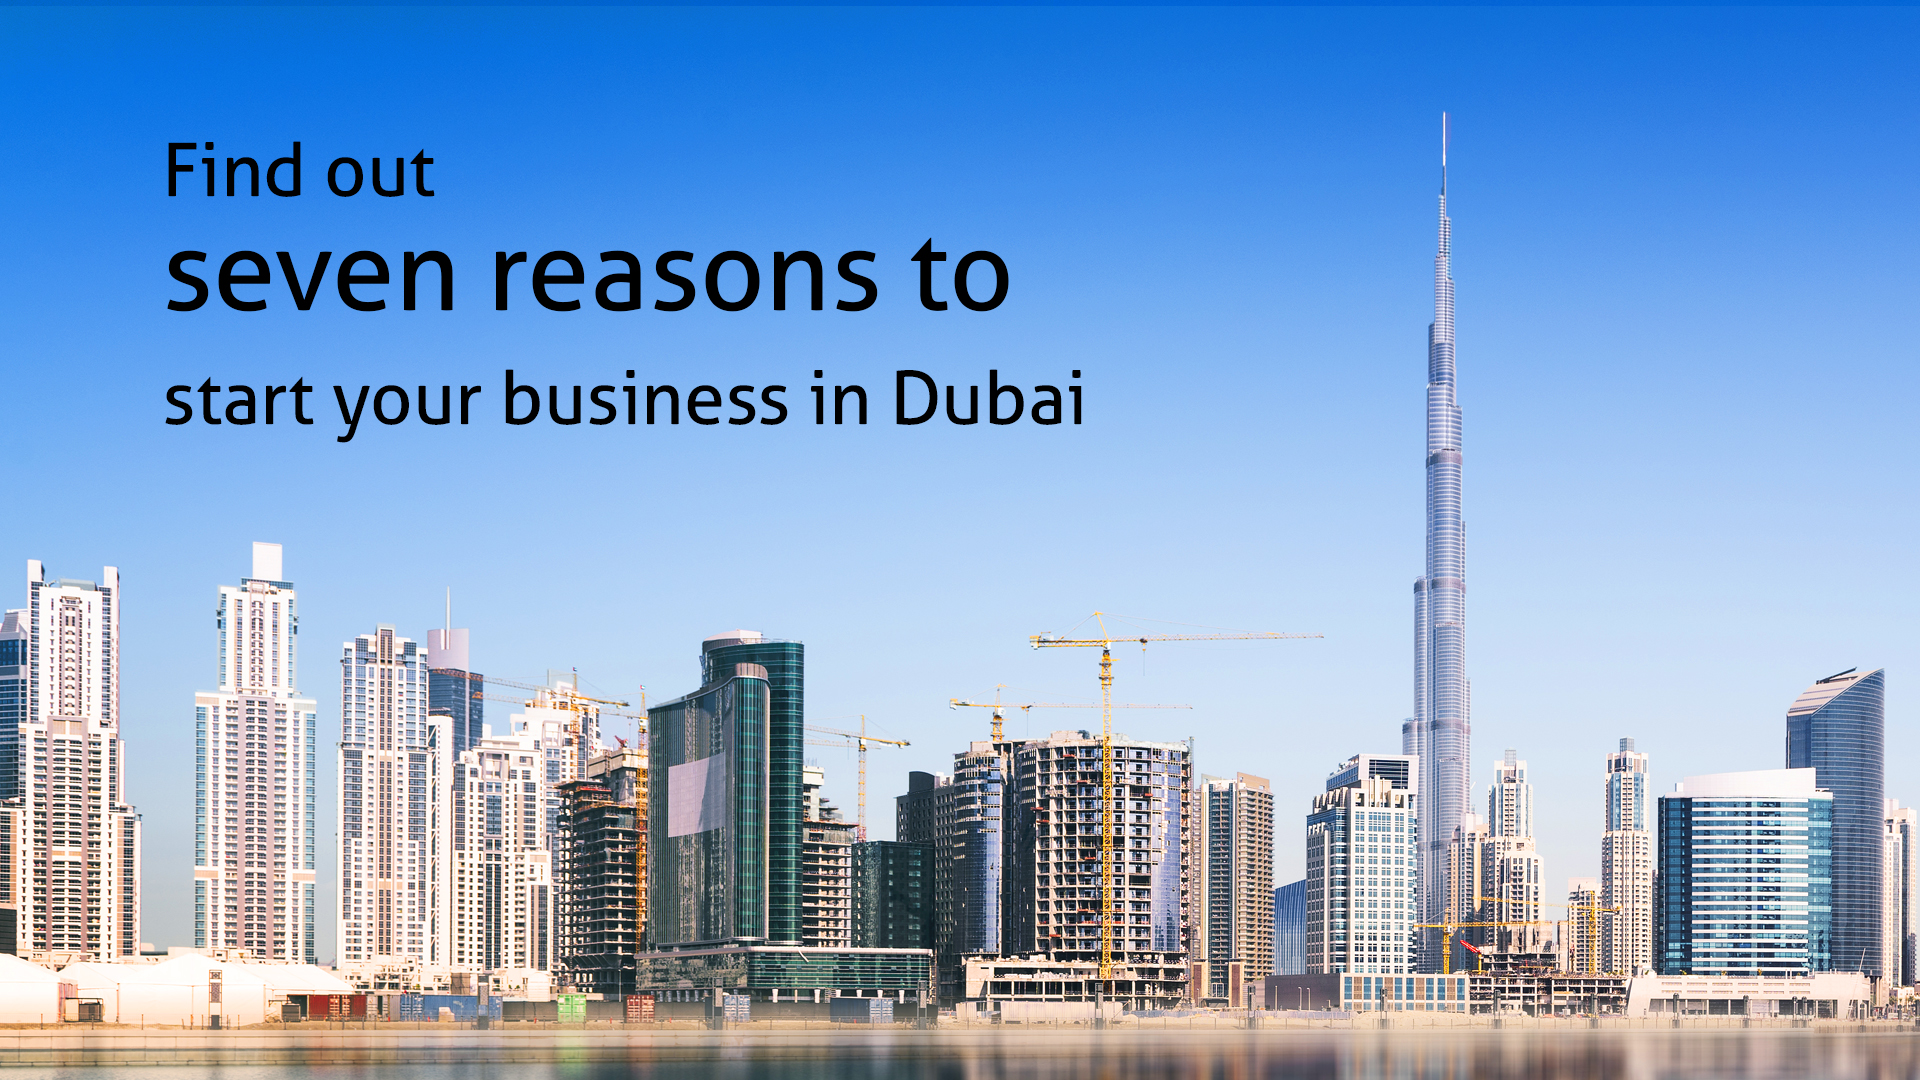 Find out seven reasons to start your business in Dubai